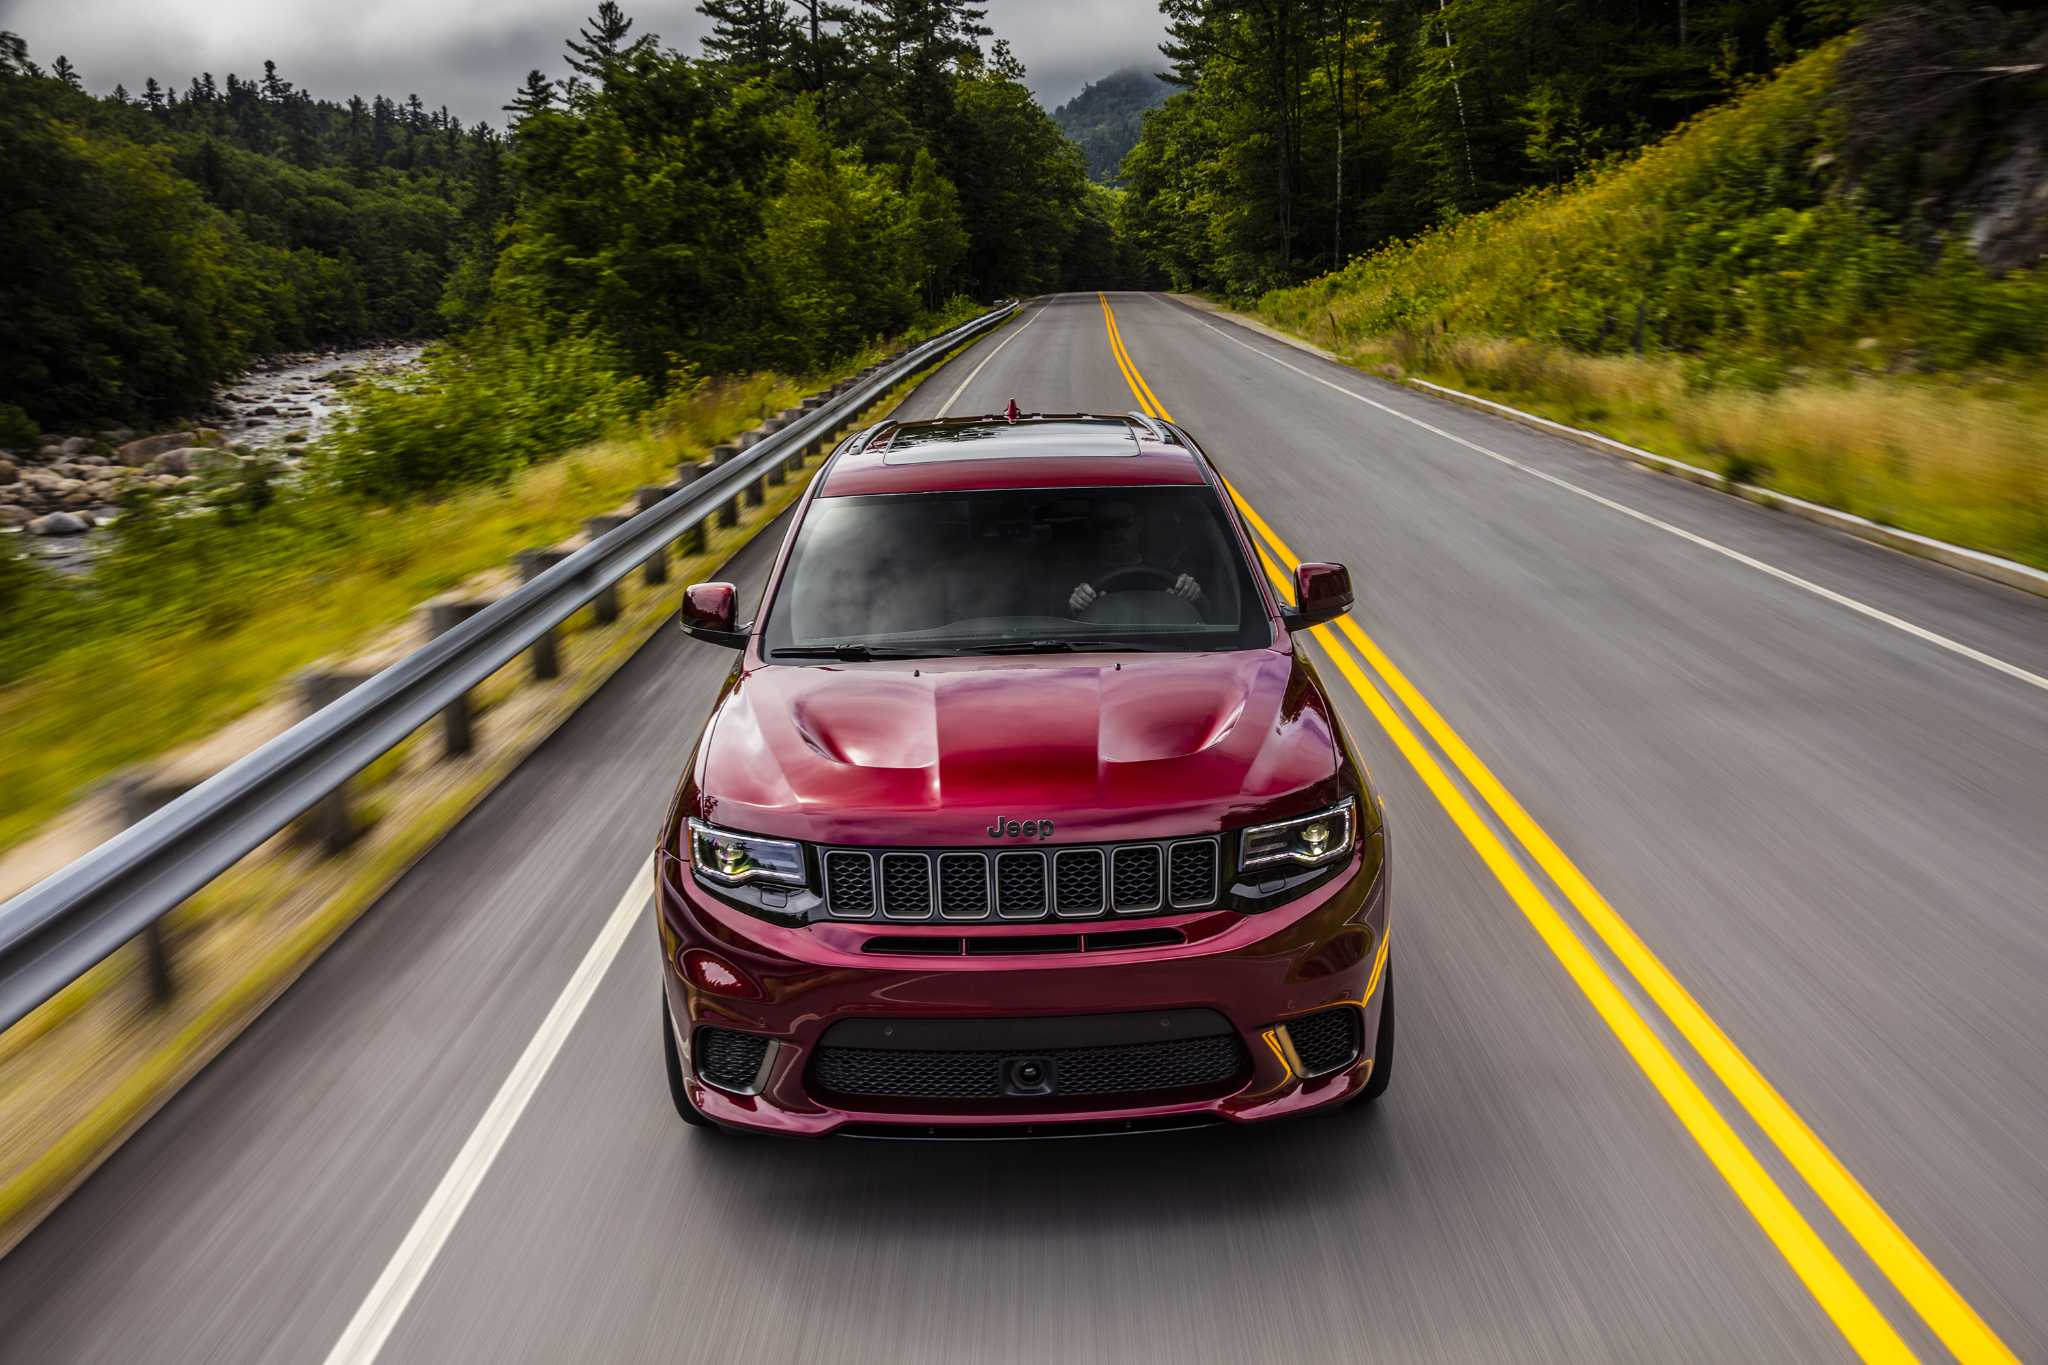 Grand Cherokee Trackhawk: Jeep's killer 707-hp SUV